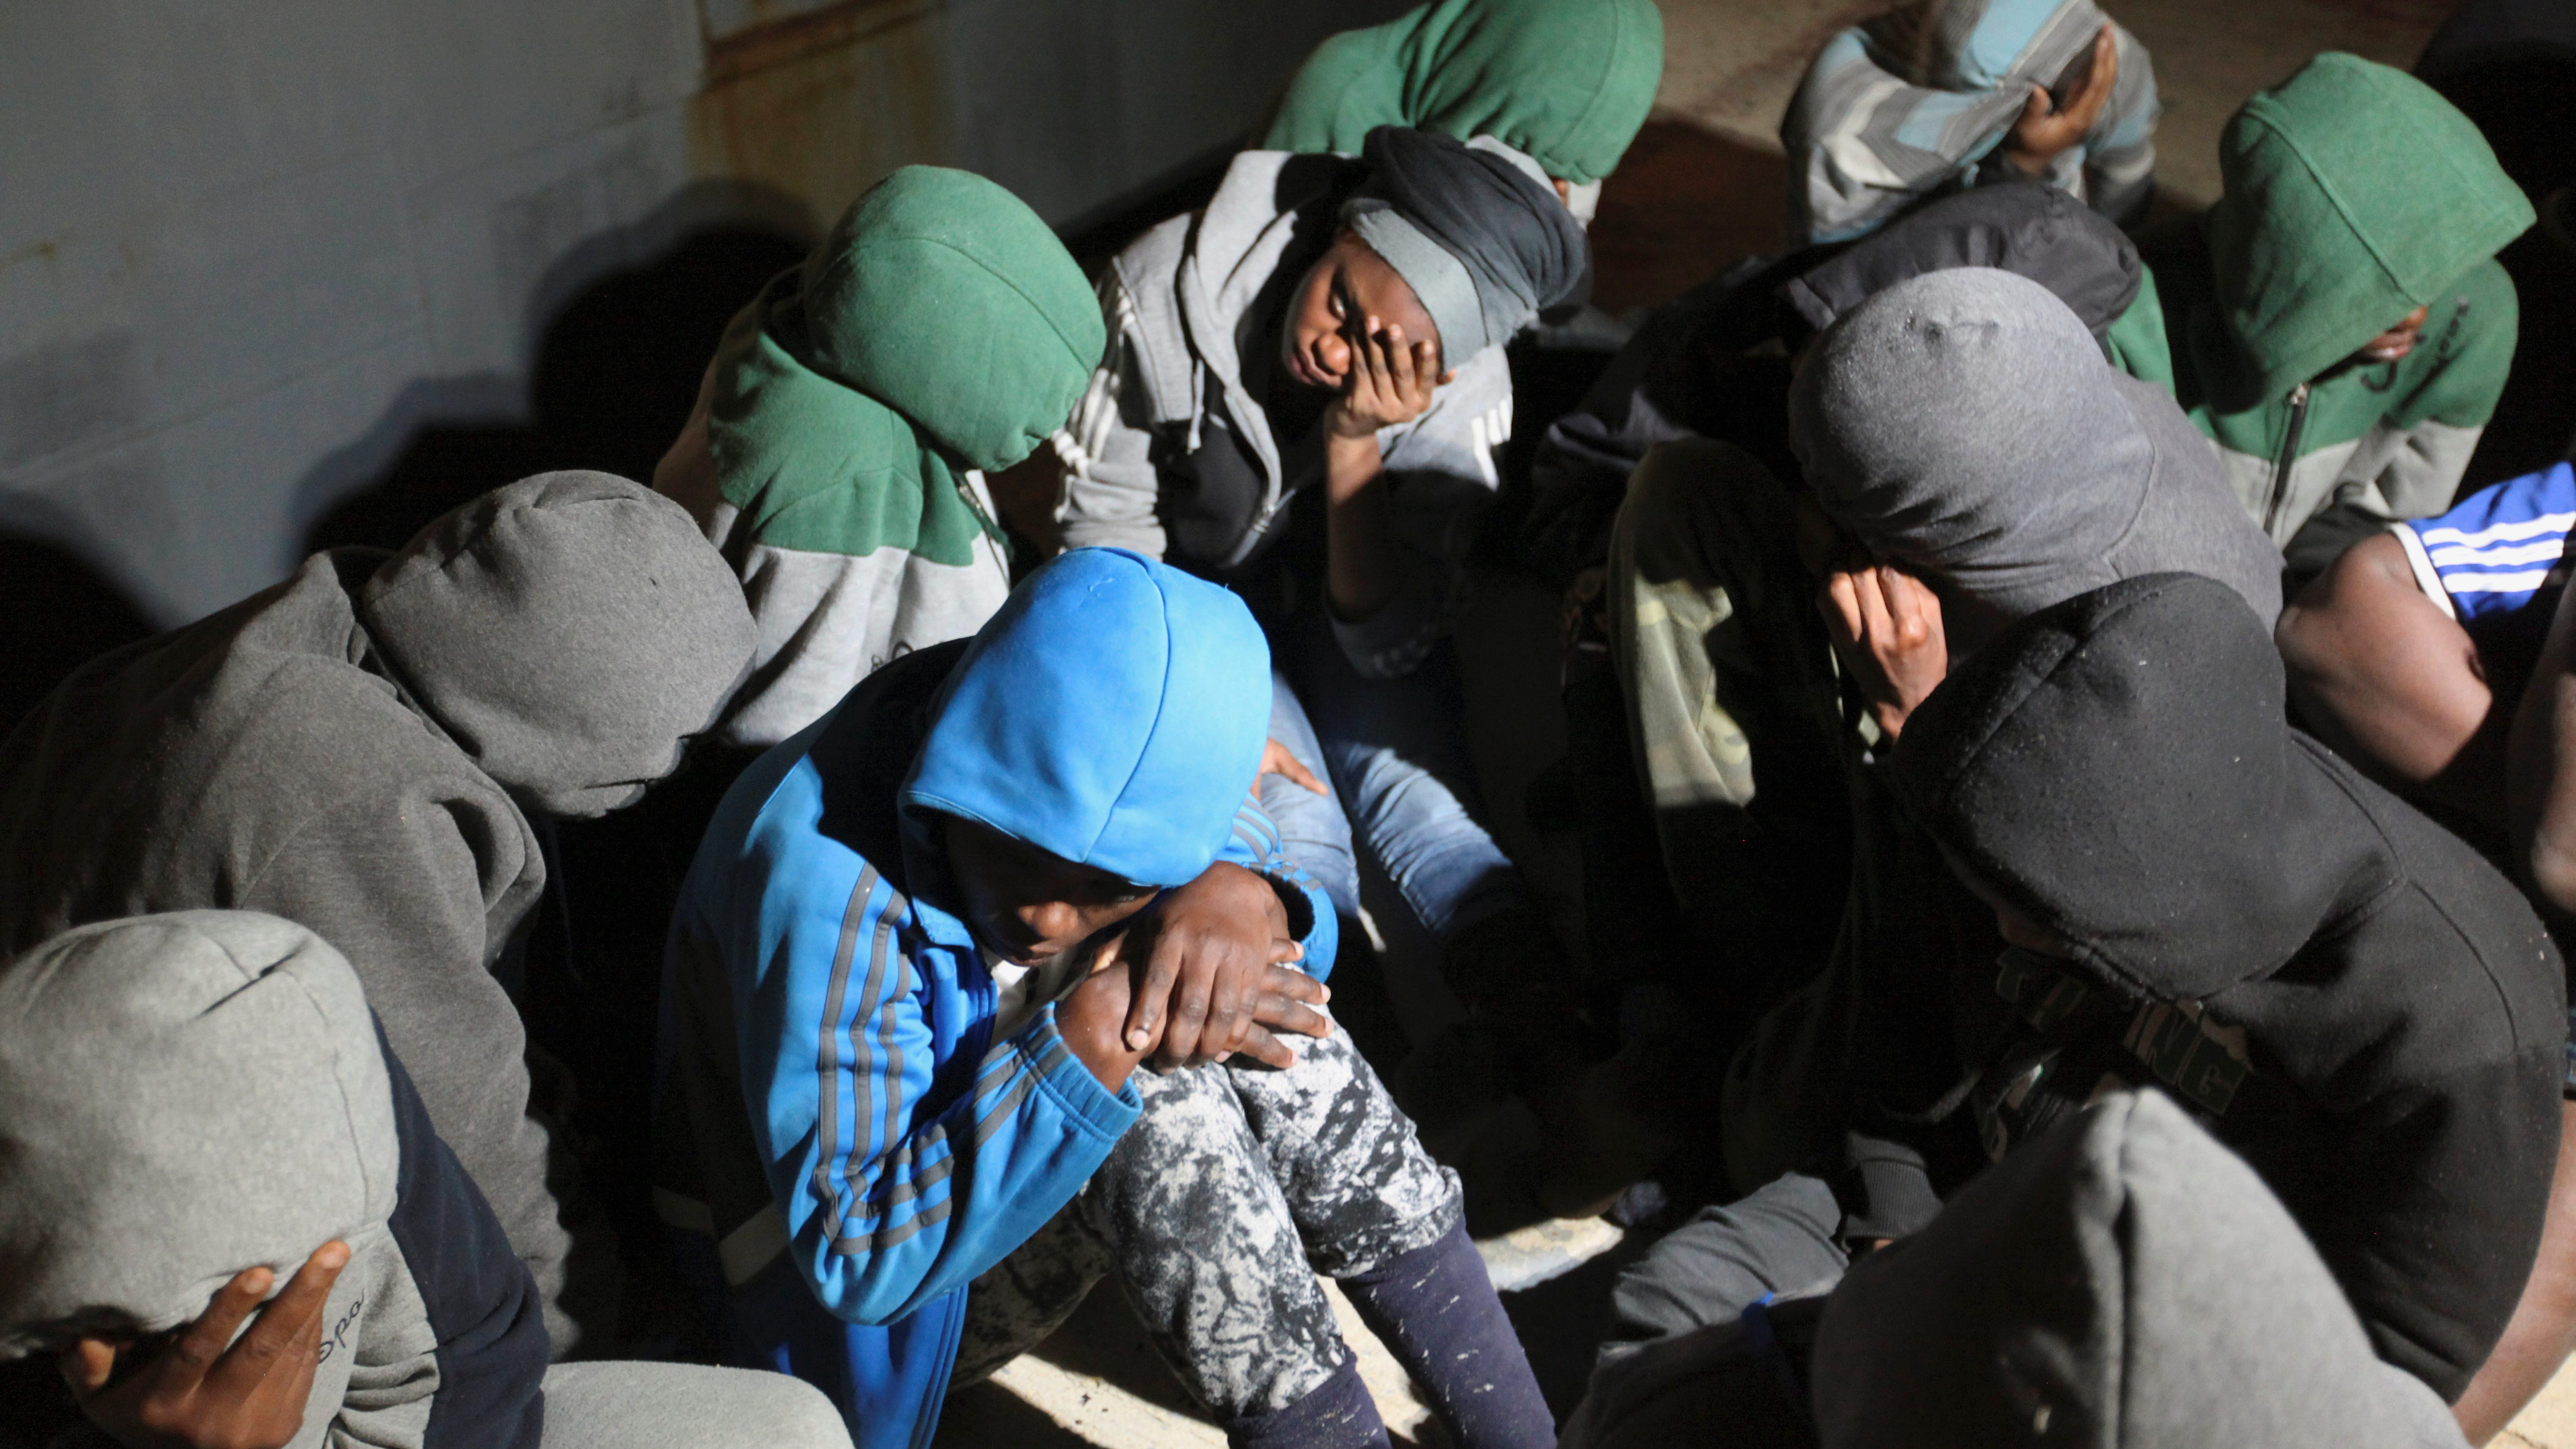 Migrants sit at a naval base after they were rescued by Libyan coastguard, in Tripoli